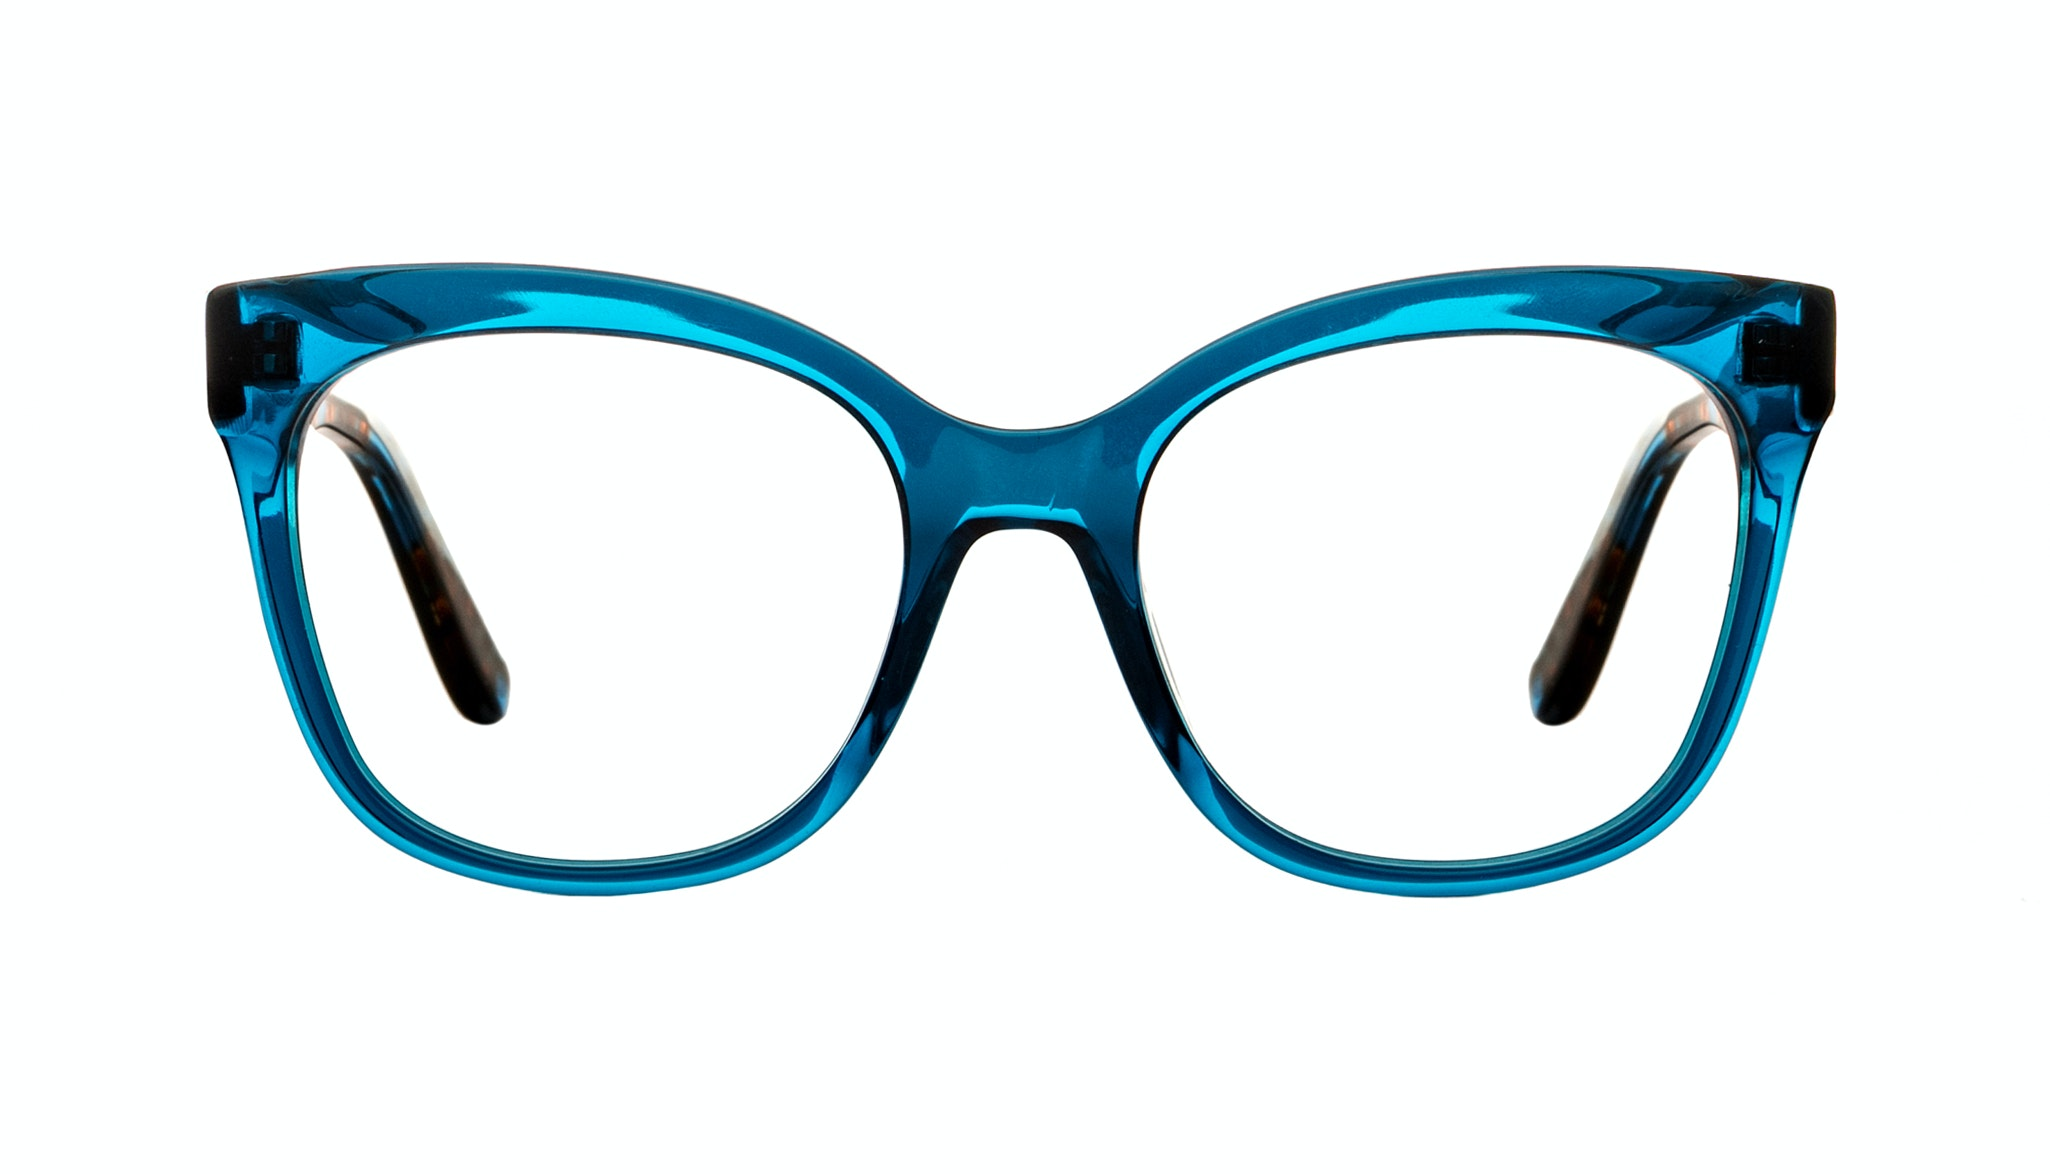 Affordable Fashion Glasses Rectangle Square Eyeglasses Women Breezy Blue Wonder